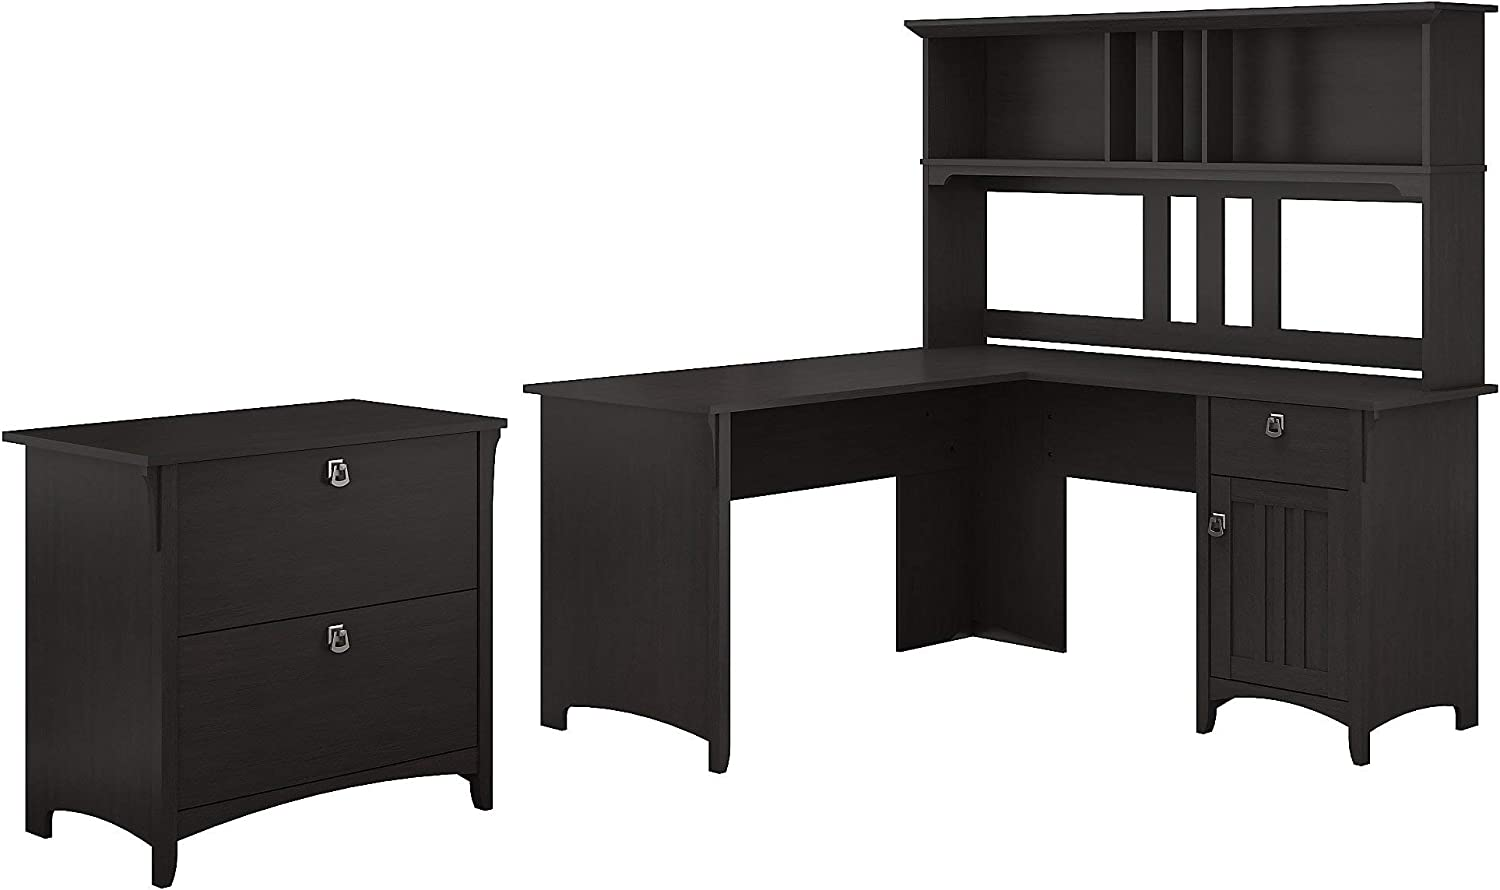 Bush Furniture Salinas 60W L Shaped Desk with Hutch and Lateral File Cabinet in Vintage Black